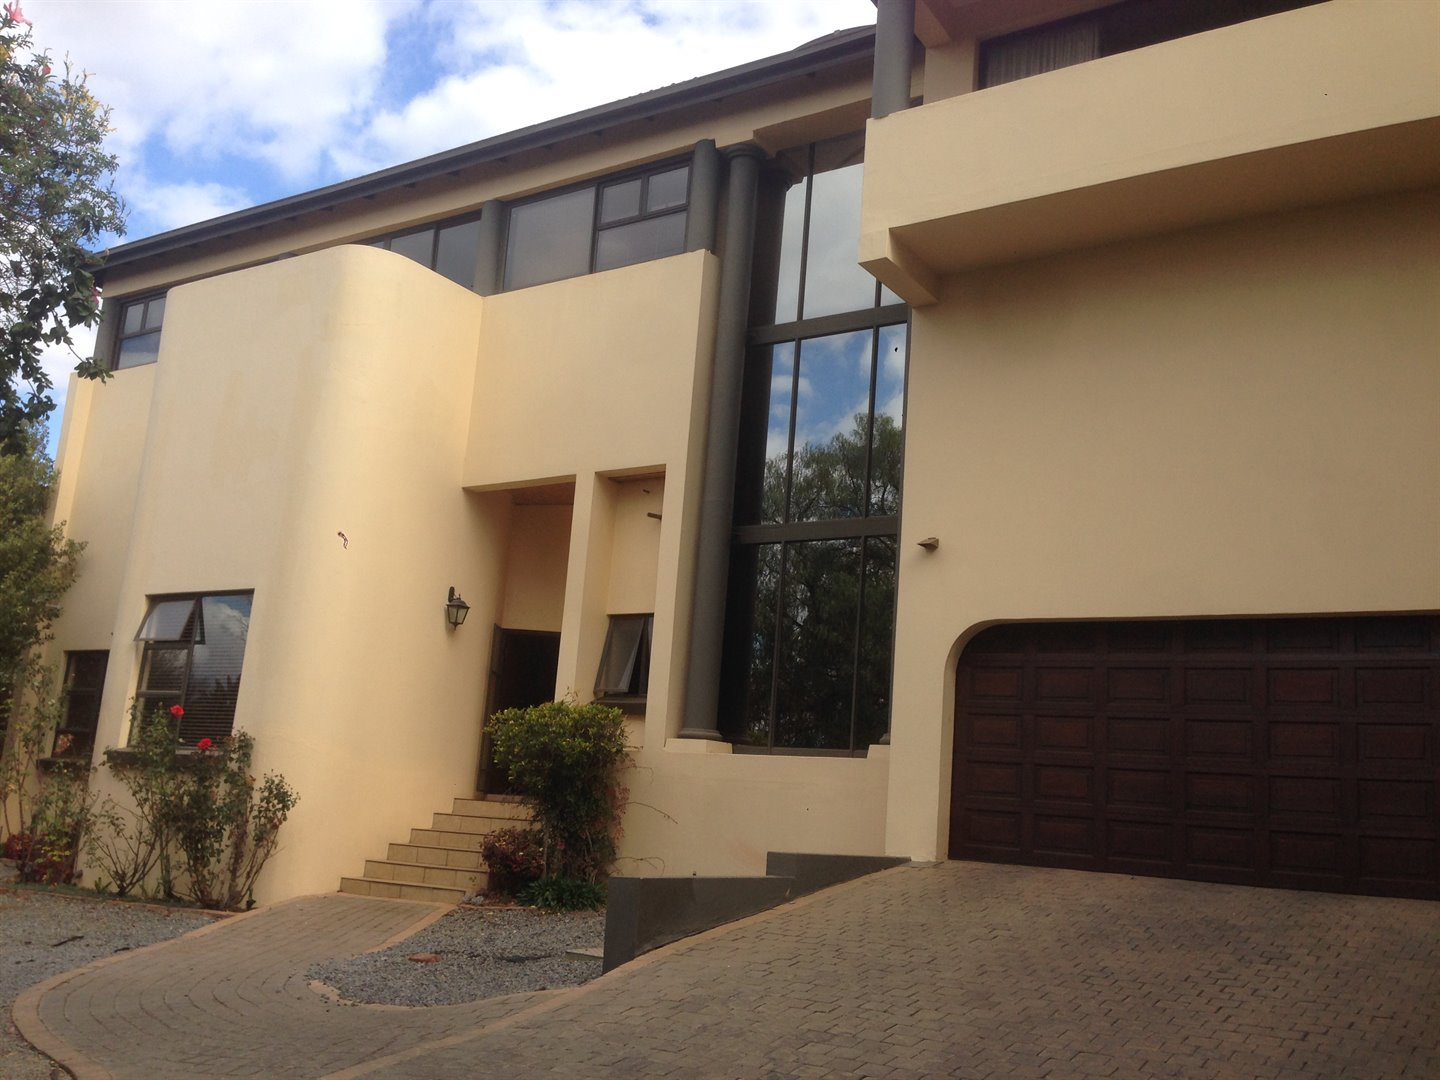 Centurion, Zwartkop Property  | Houses For Sale Zwartkop, Zwartkop, House 6 bedrooms property for sale Price:3,750,000